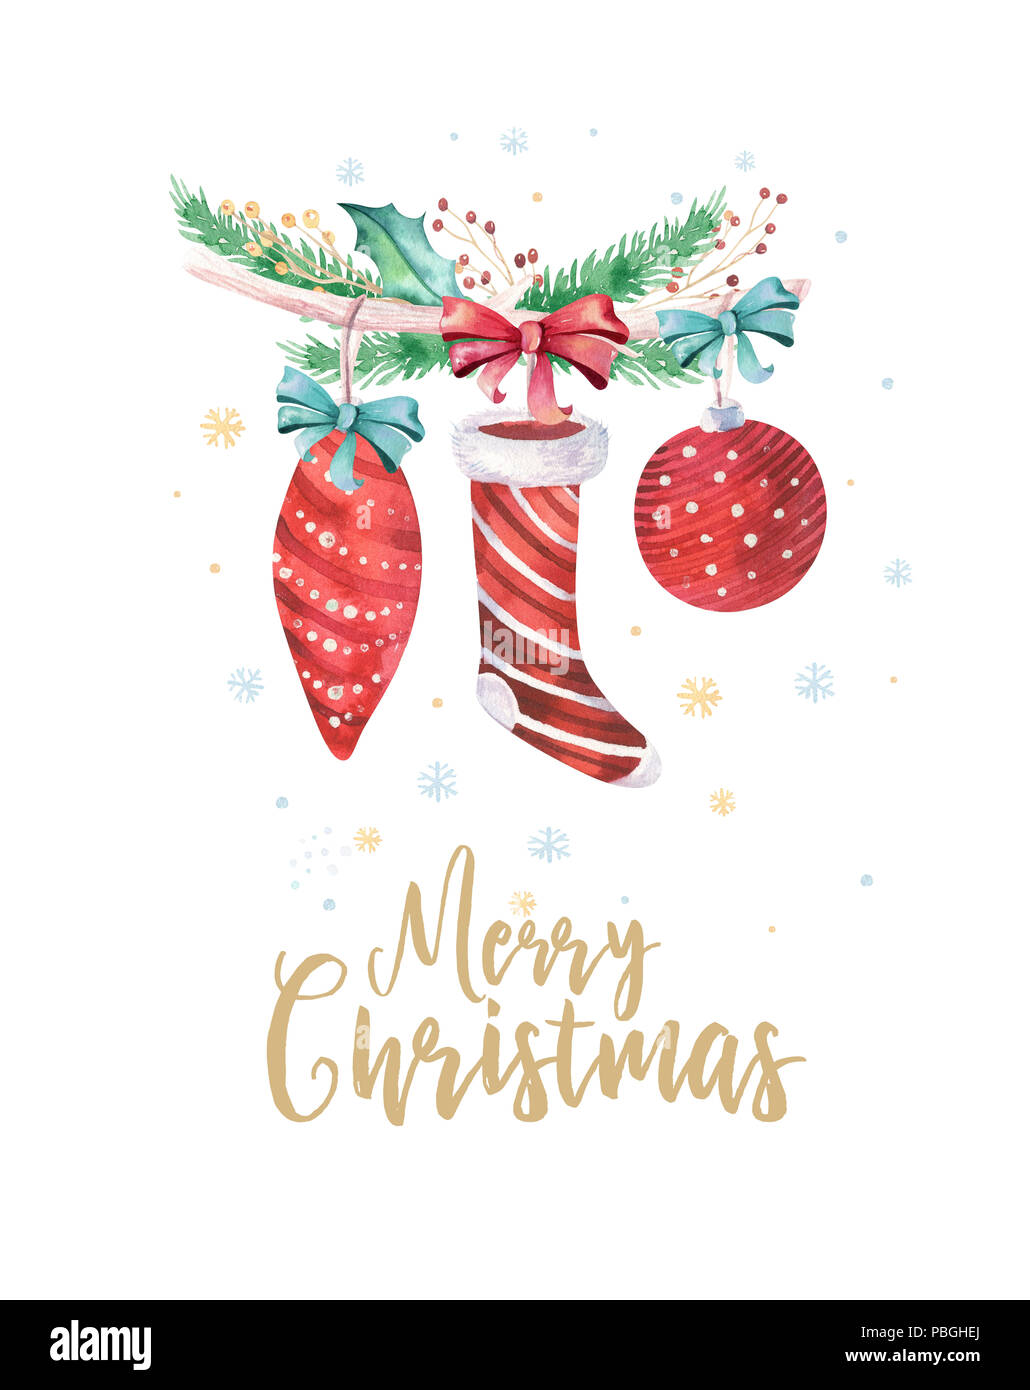 Merry Christmas 2019 Images.Merry Christmas And Happy New Year 2019 Decoration Winter